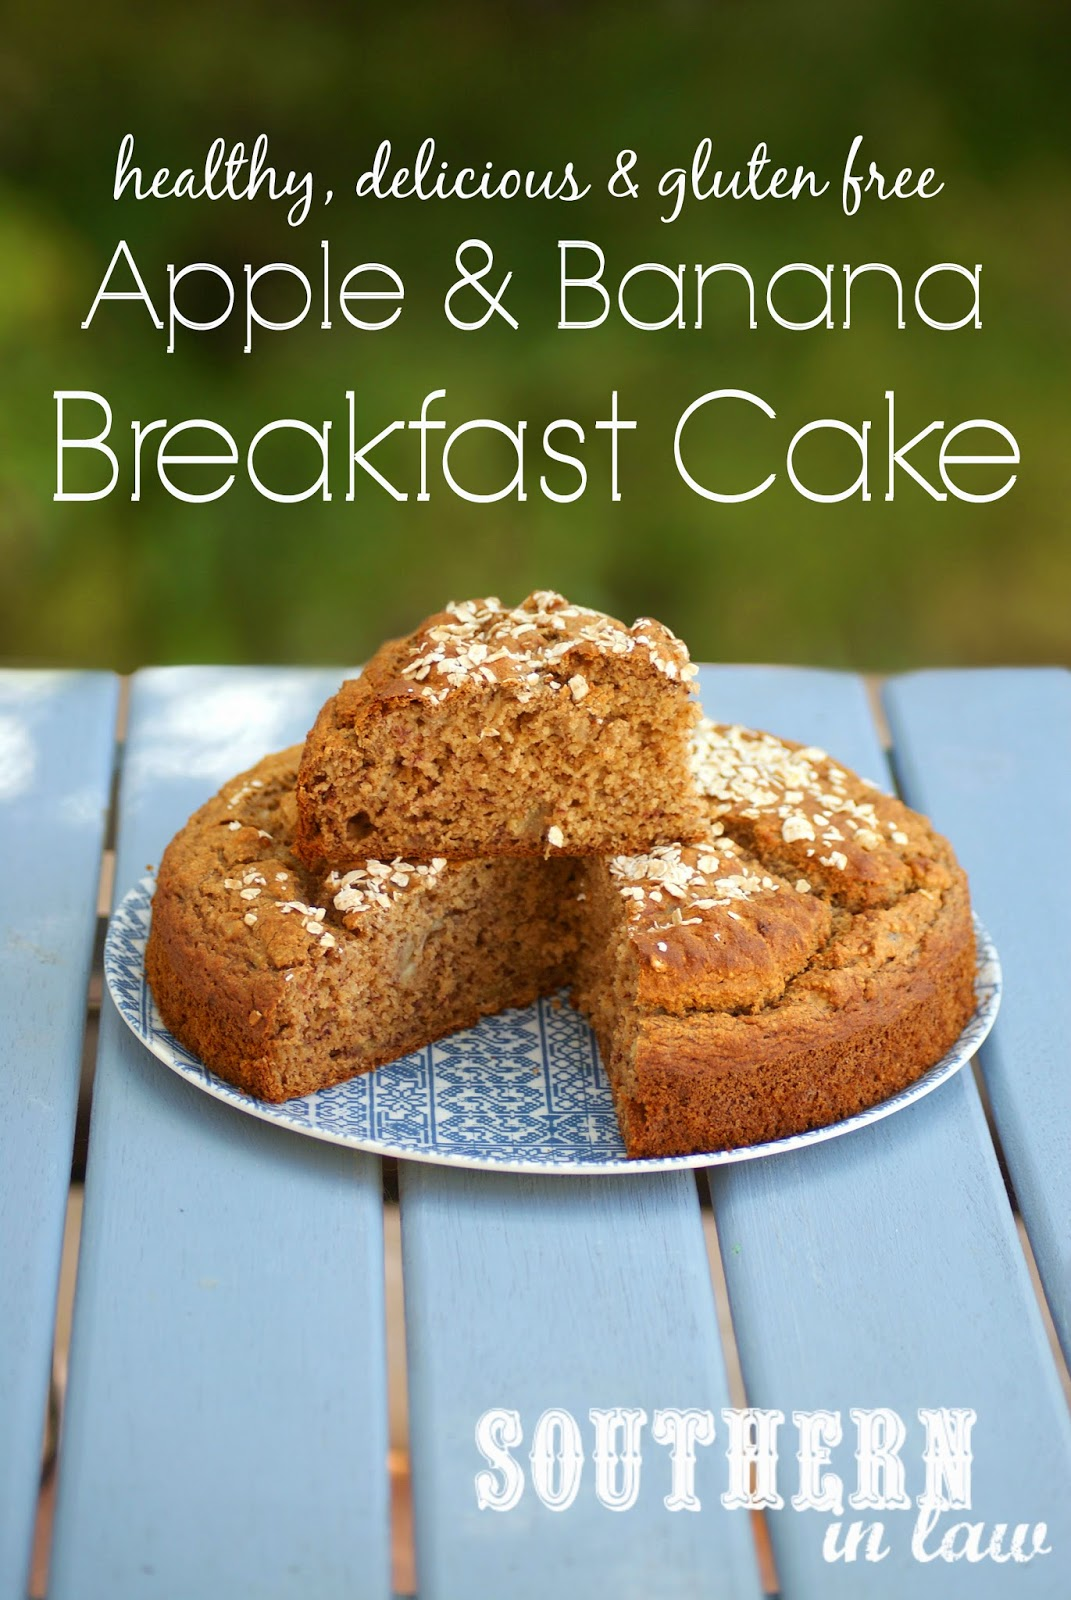 Healthy Apple and Banana Breakfast Cake - Gluten free, low fat, sugar free, clean eating friendly, dairy free